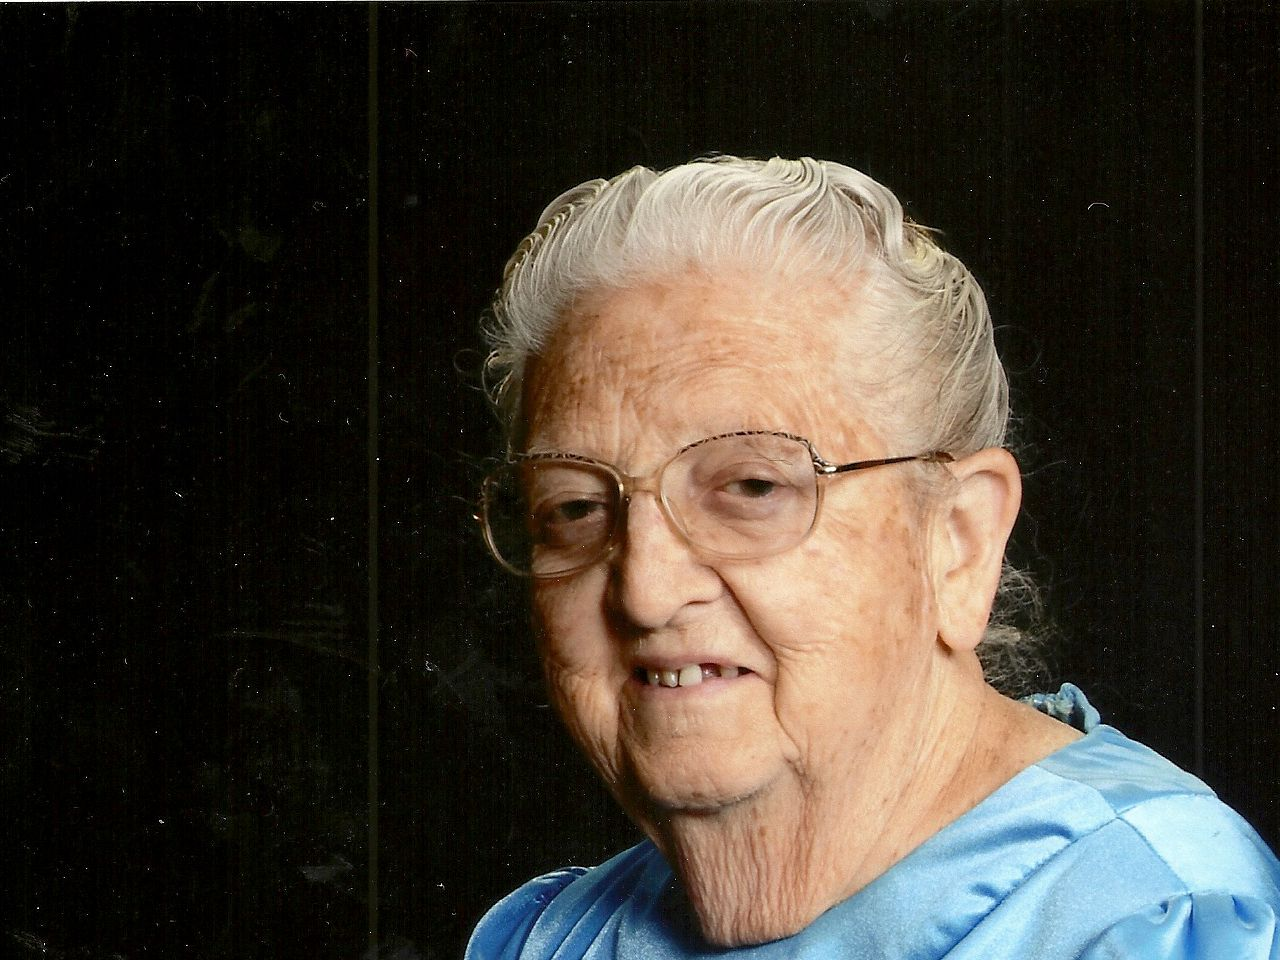 Mary W. Roes, 91, of Croghan